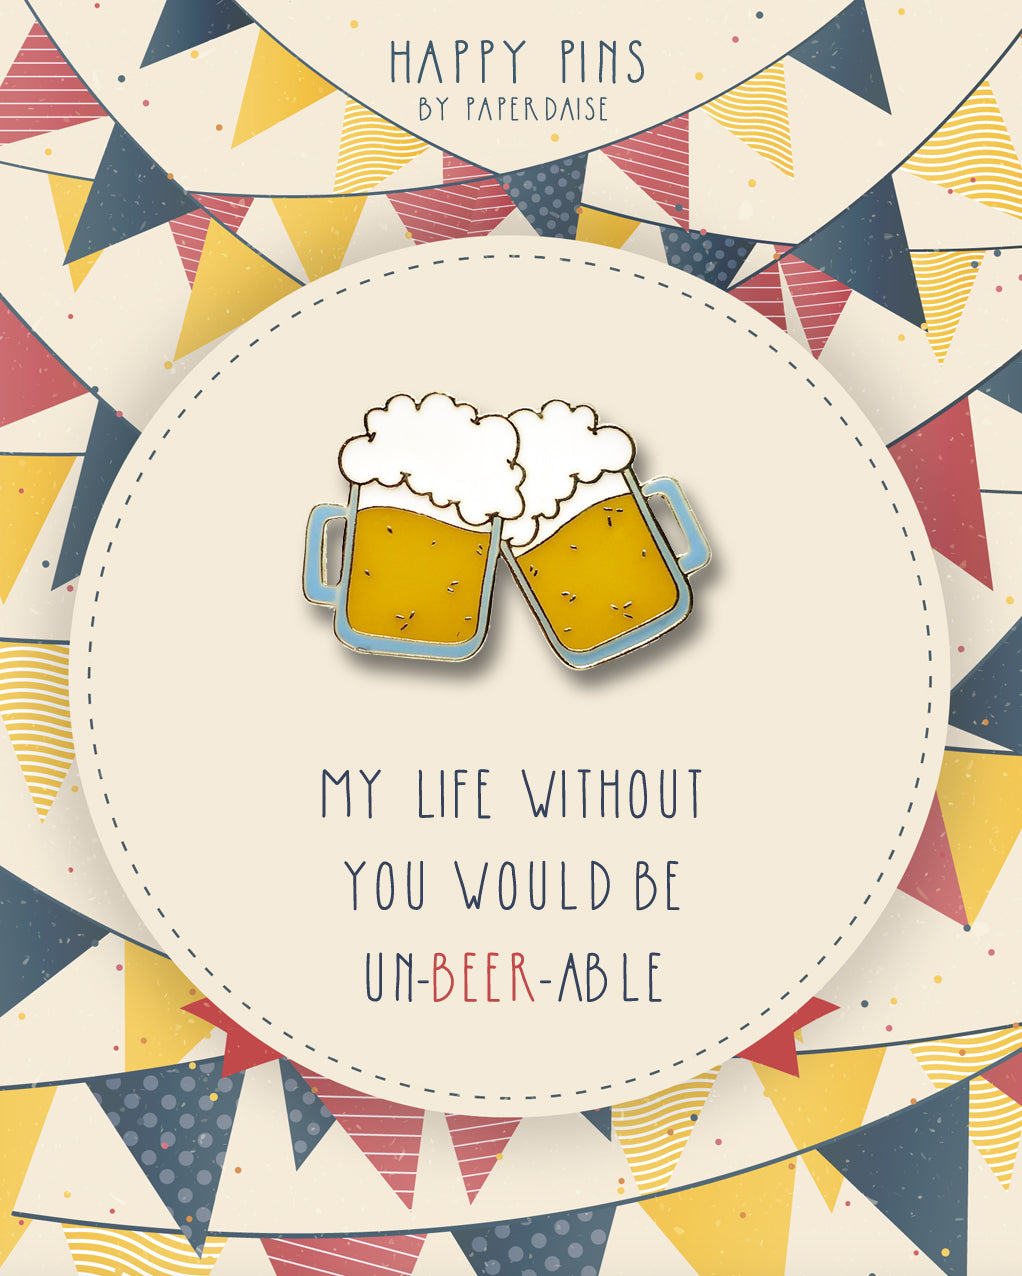 Life Without You Unbearable Beer Pin